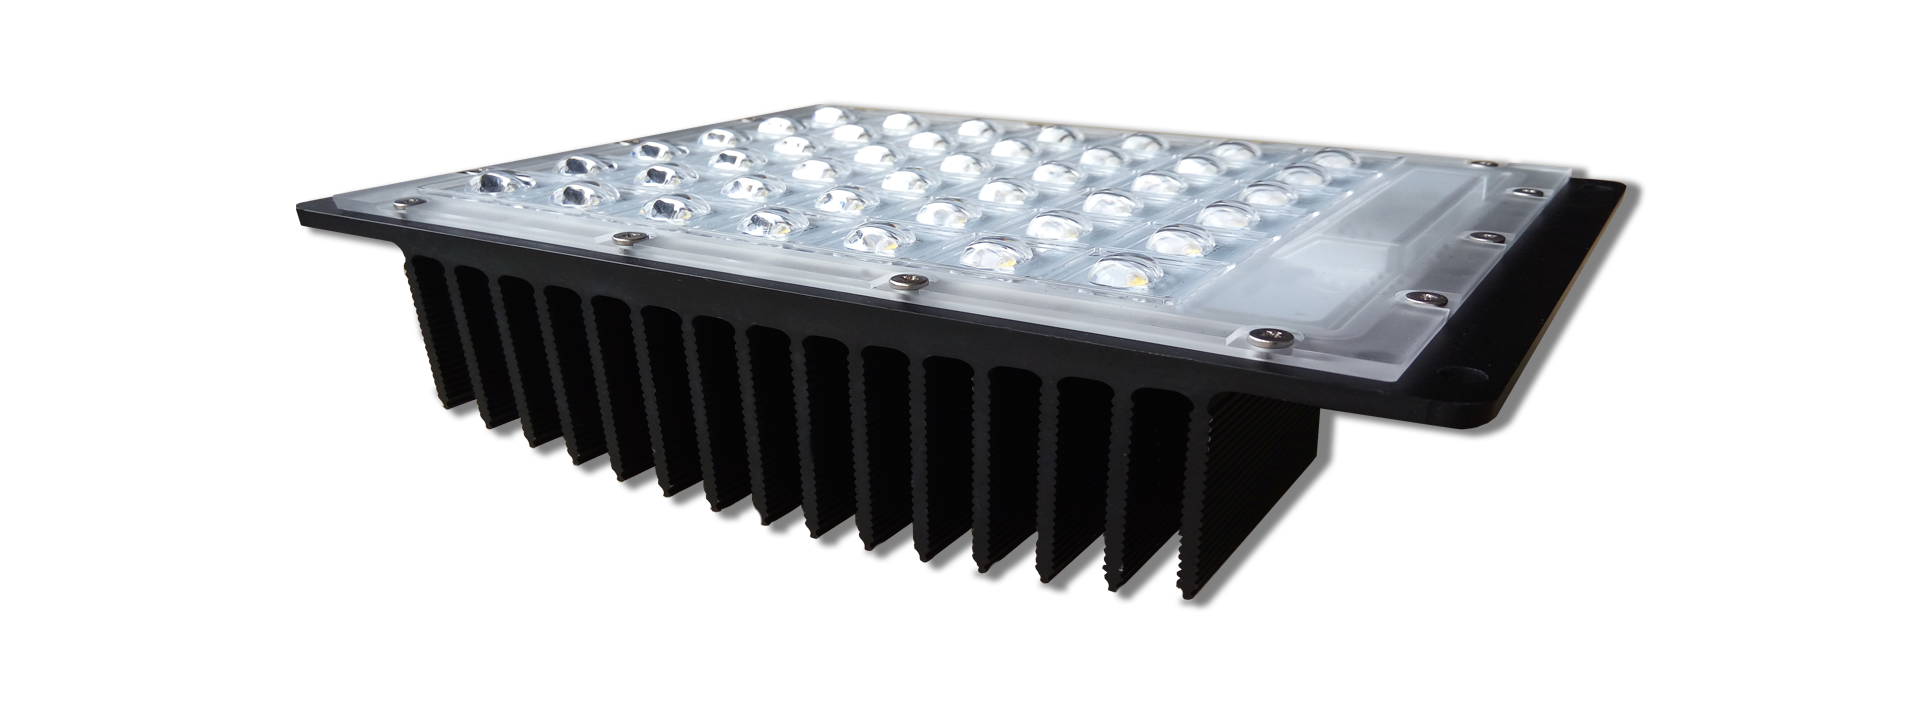 42LED_Philips_5050_Retrofit_Modulos_Villa_Fernandino_Palacio_Imperial_LED